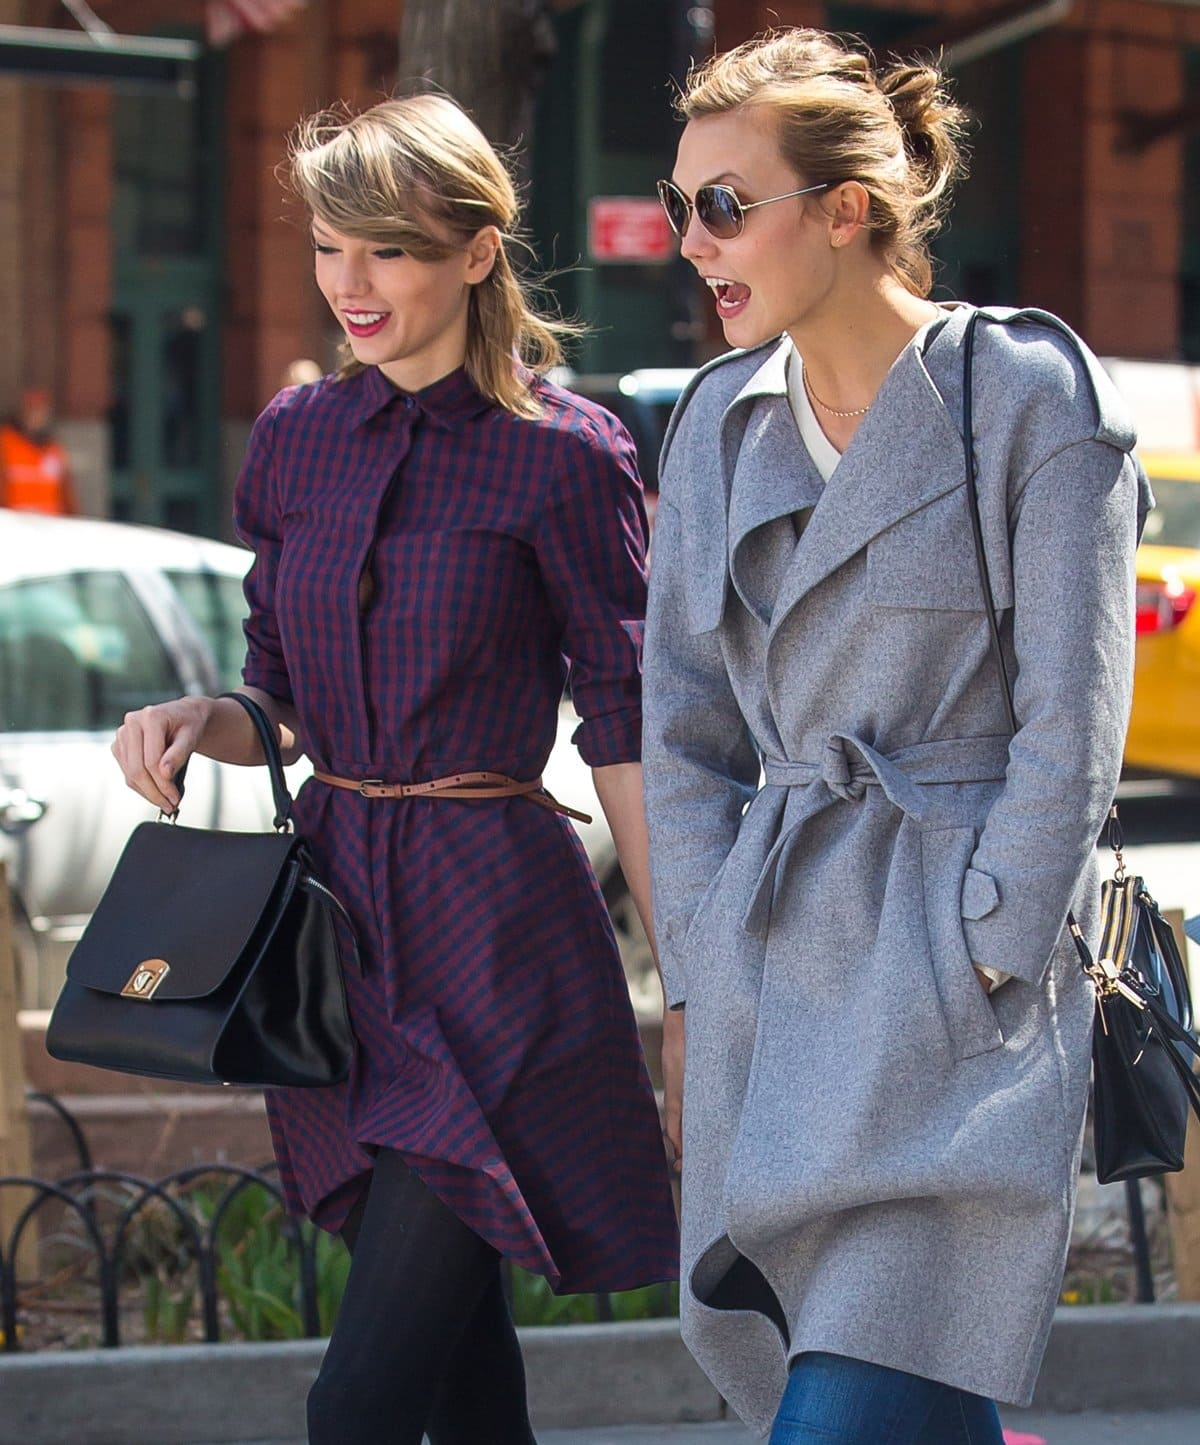 Taylor Swift refused to attend either of her former best friend Karlie Kloss's two weddings